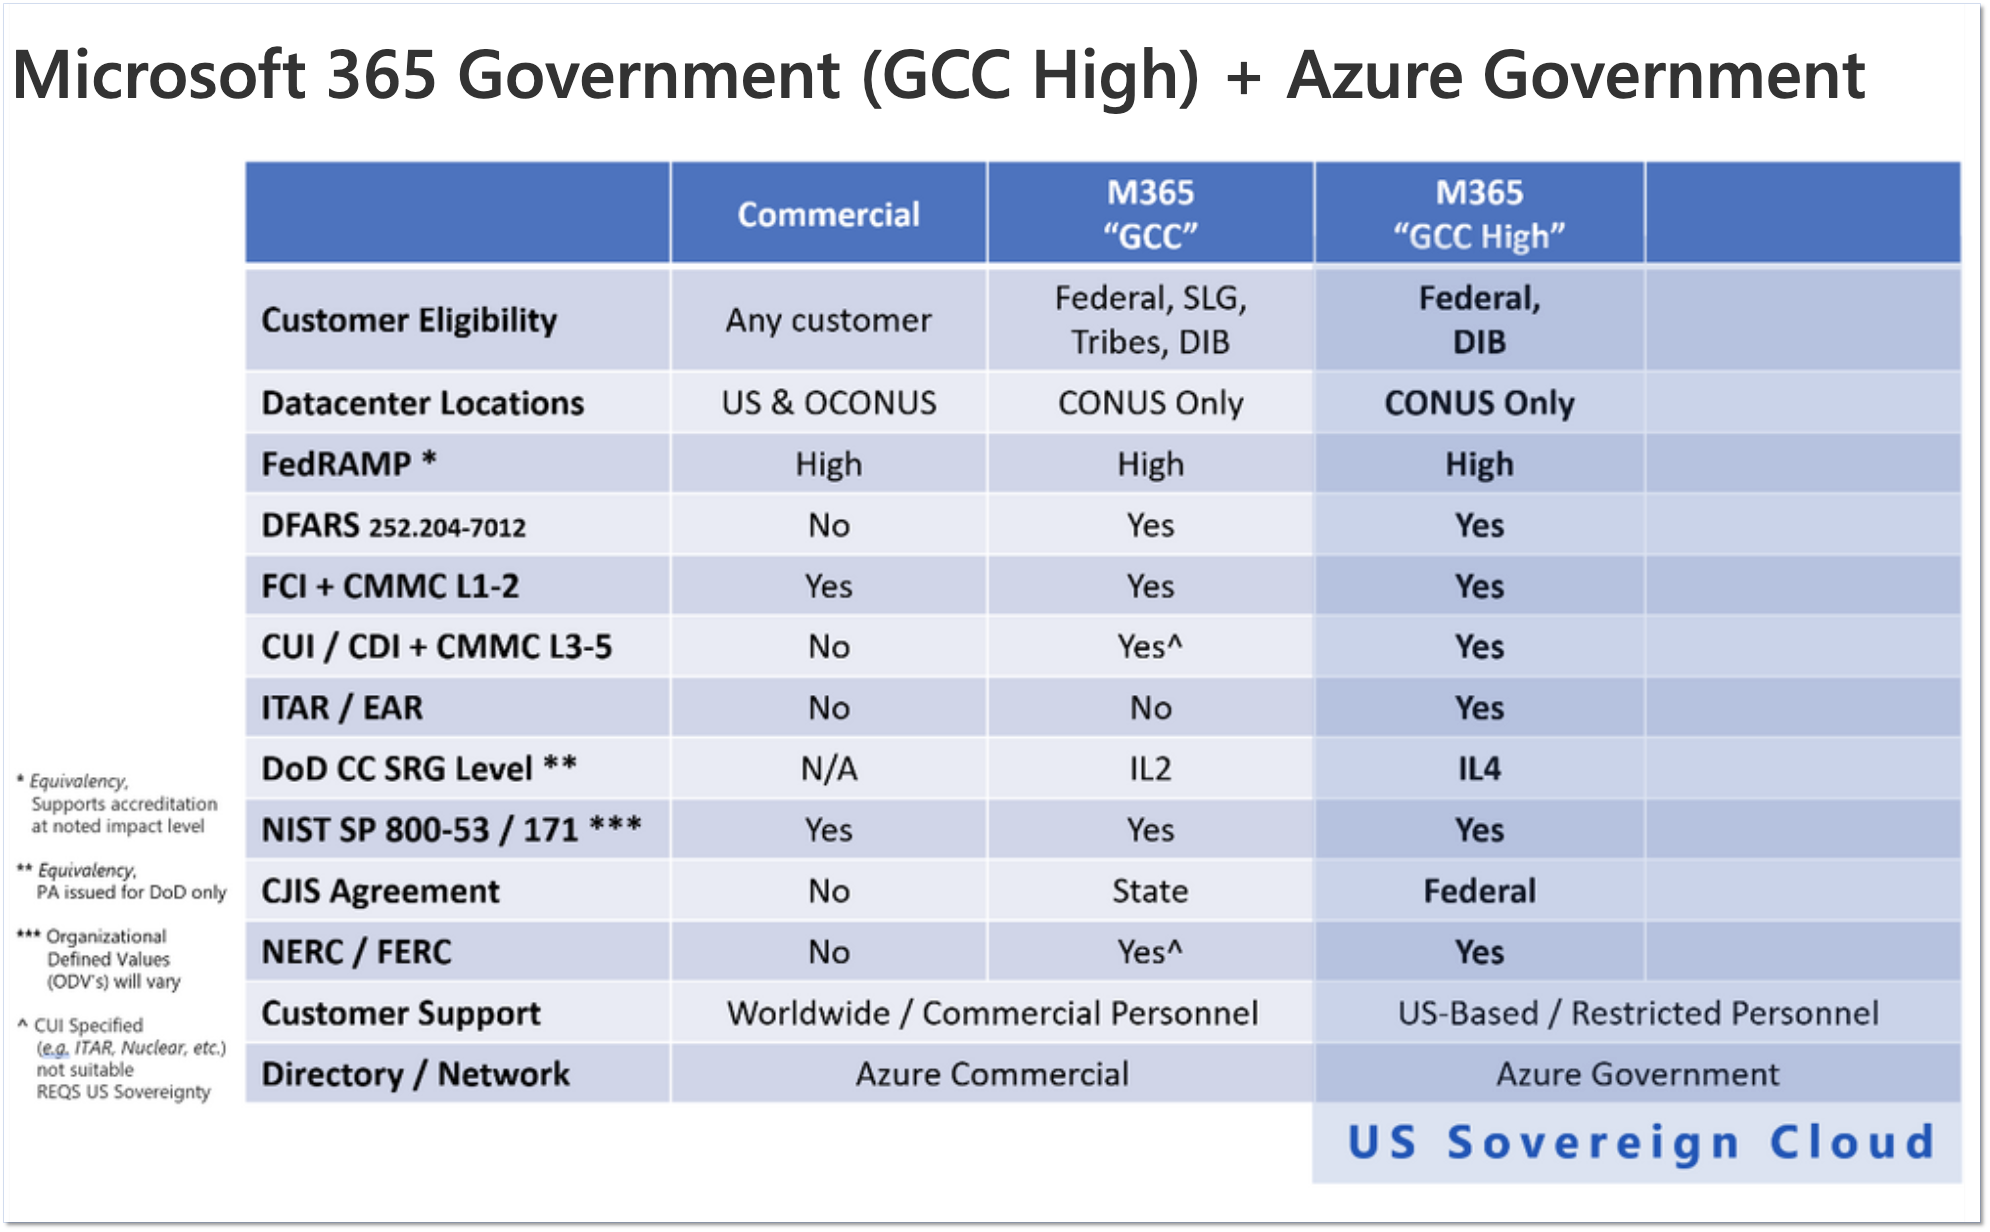 Comparison chart of Microsoft Commercial, M365 GCC, and M365 GCC High.